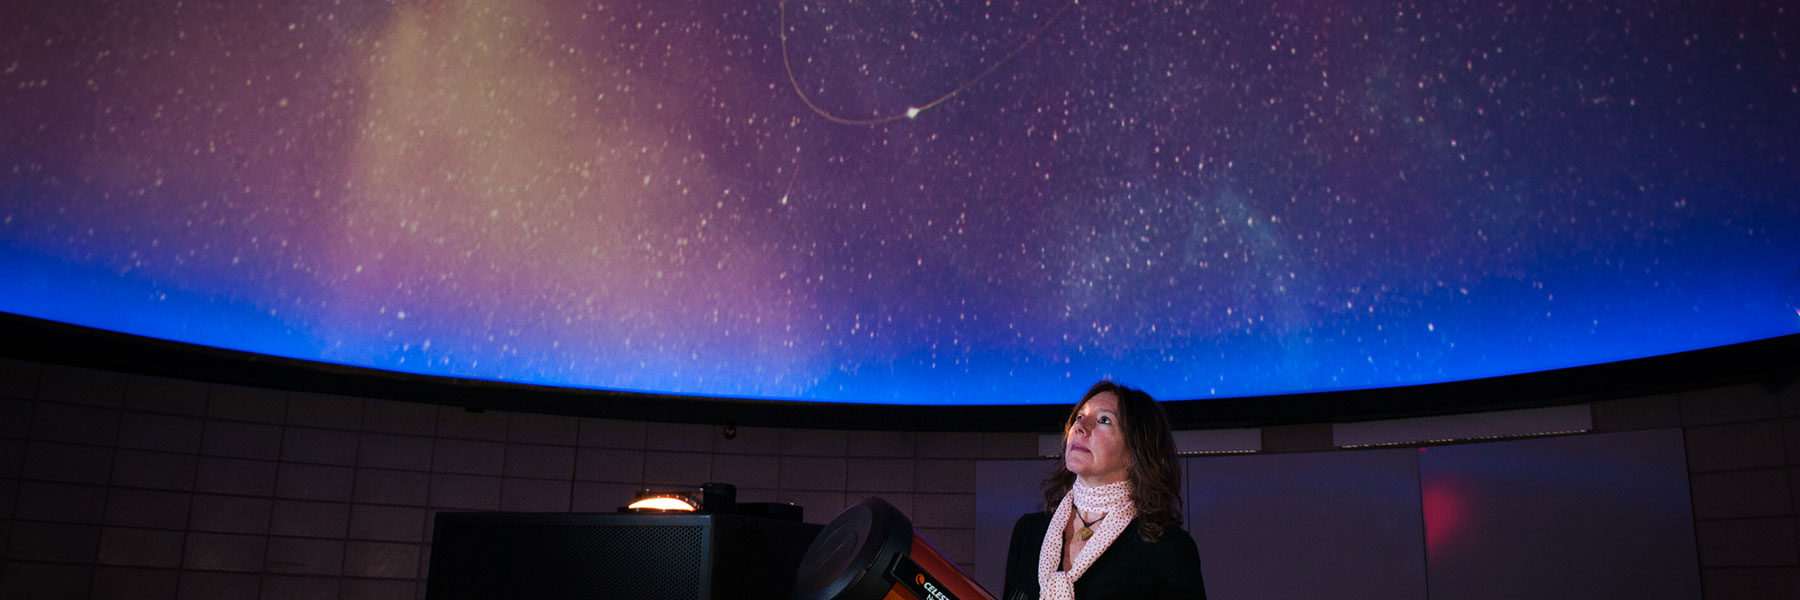 Instructor inside planetarium displaying night sky